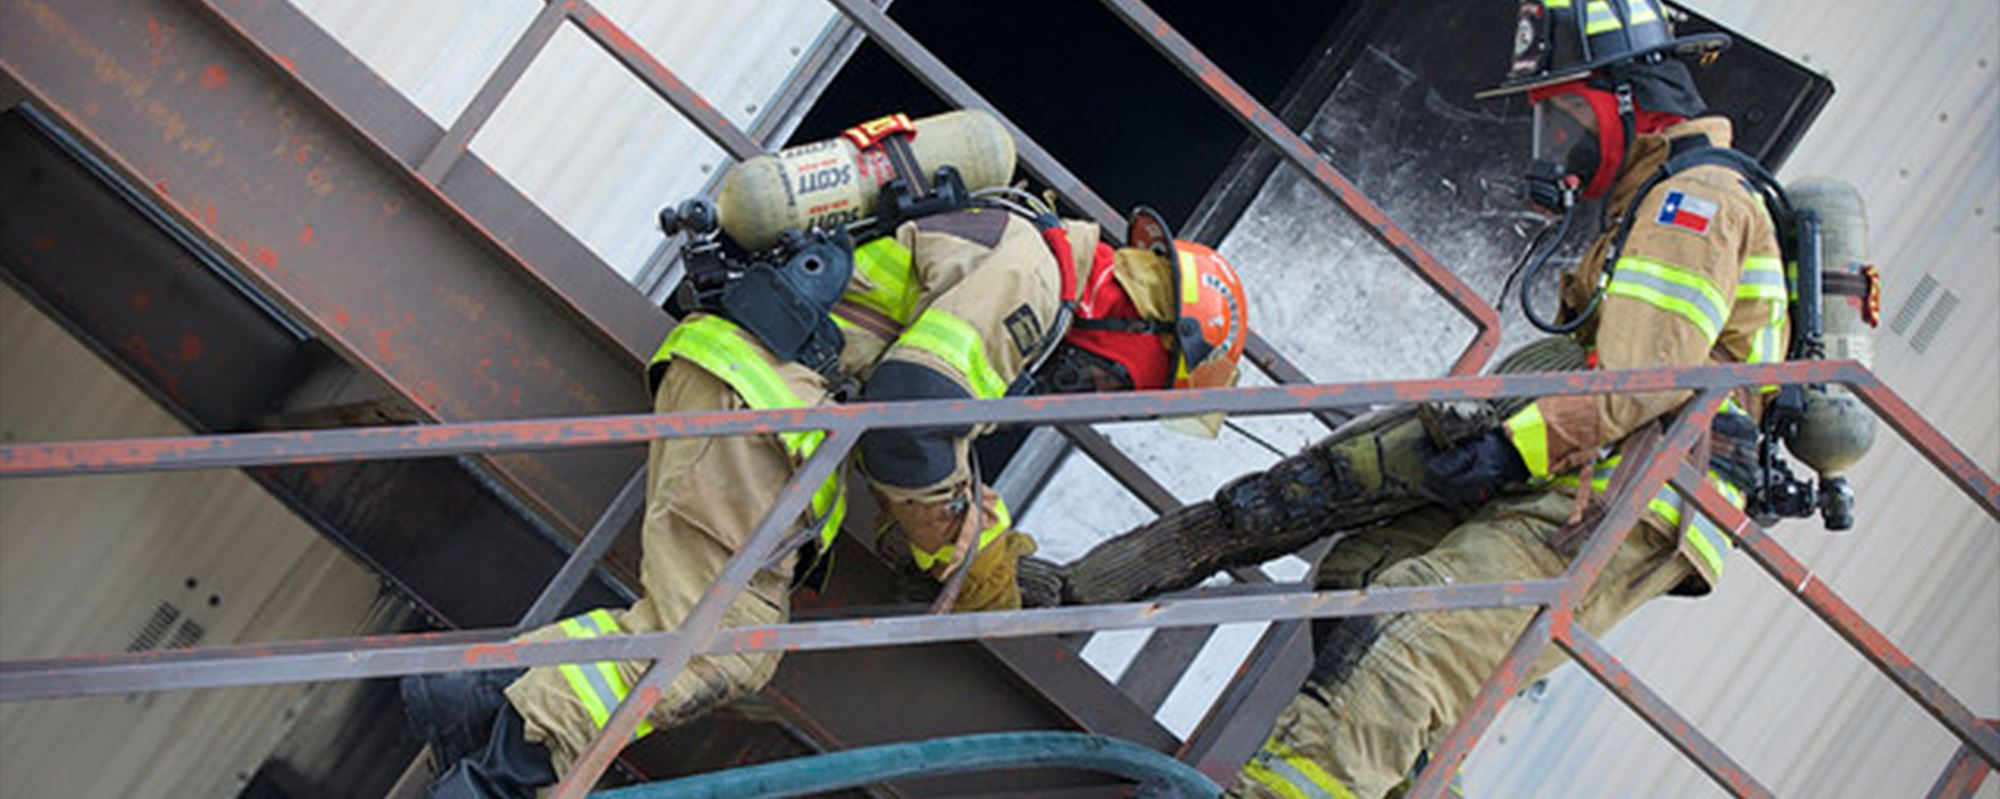 Two firemen at work